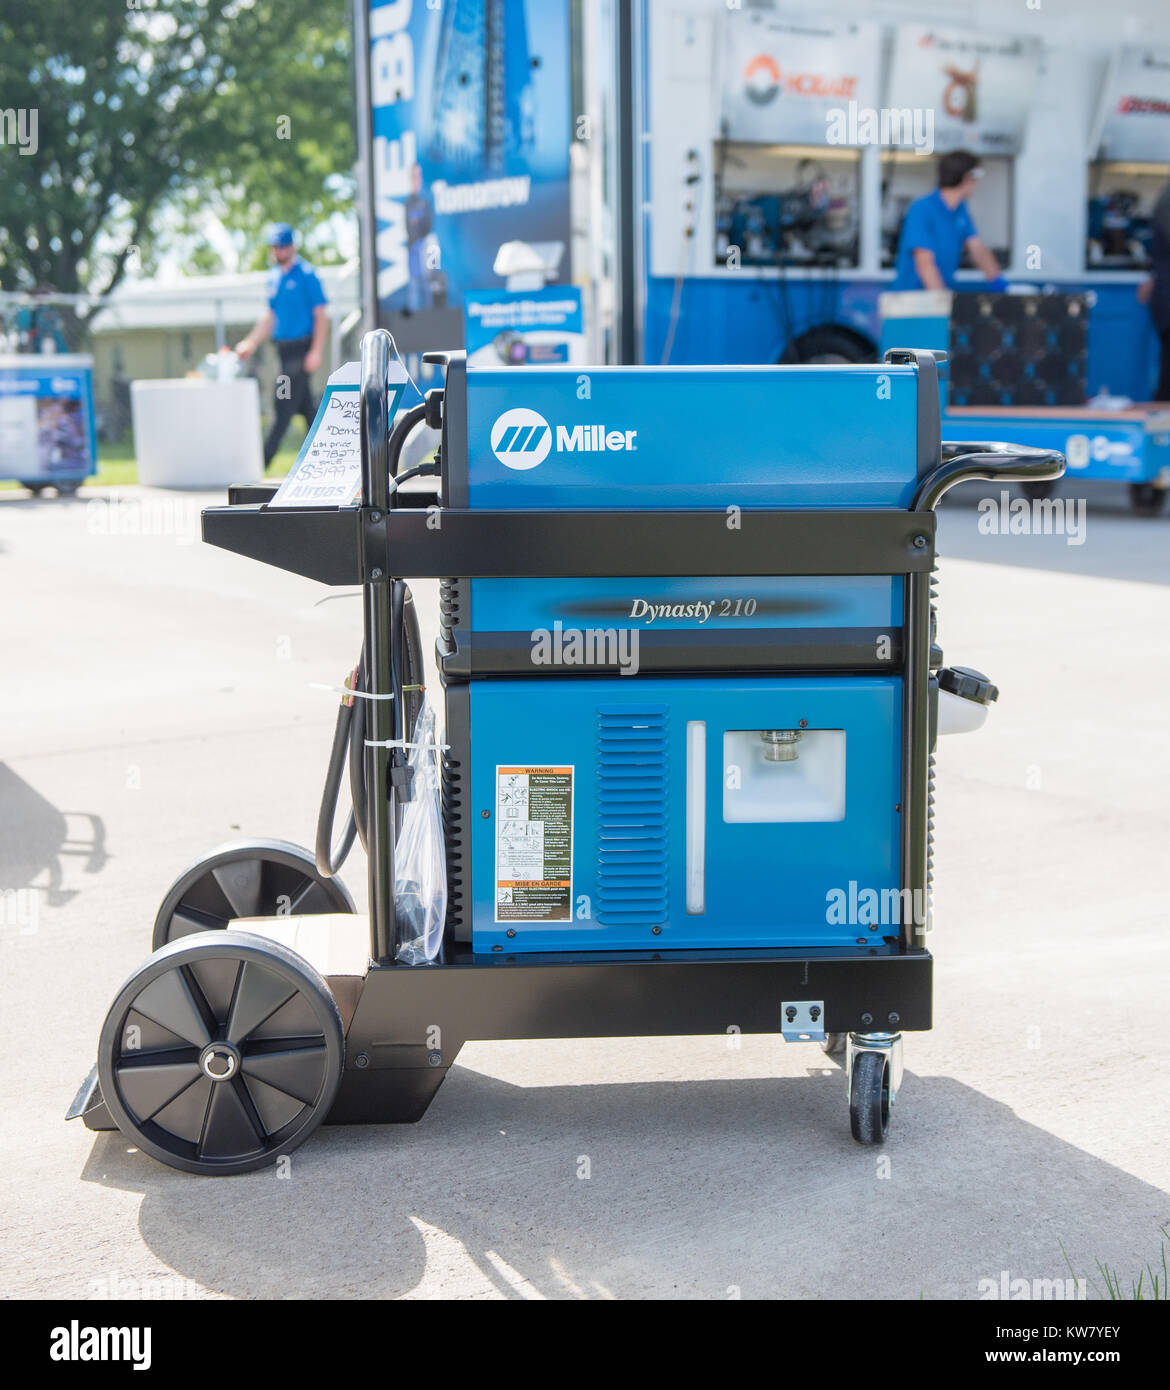 Oshkosh, WI - 24 July 2017:  A Miller welder machine on display - Stock Image